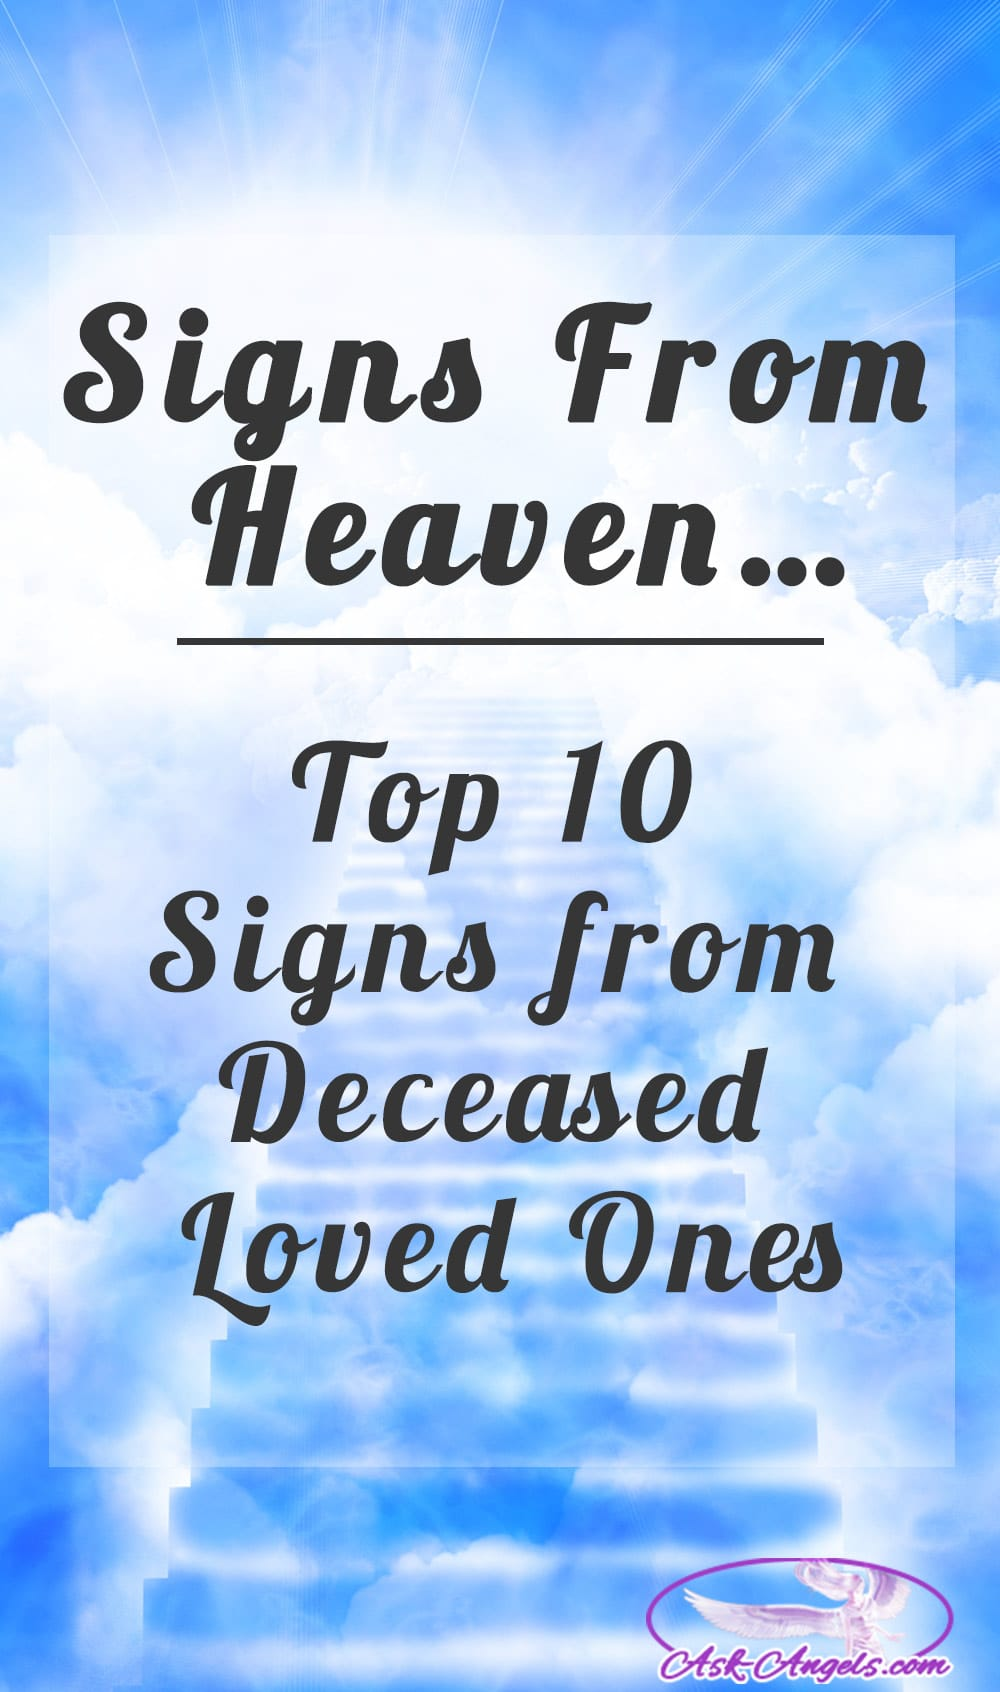 Signs from Heaven… Top 9 Signs from Deceased Loved Ones ...